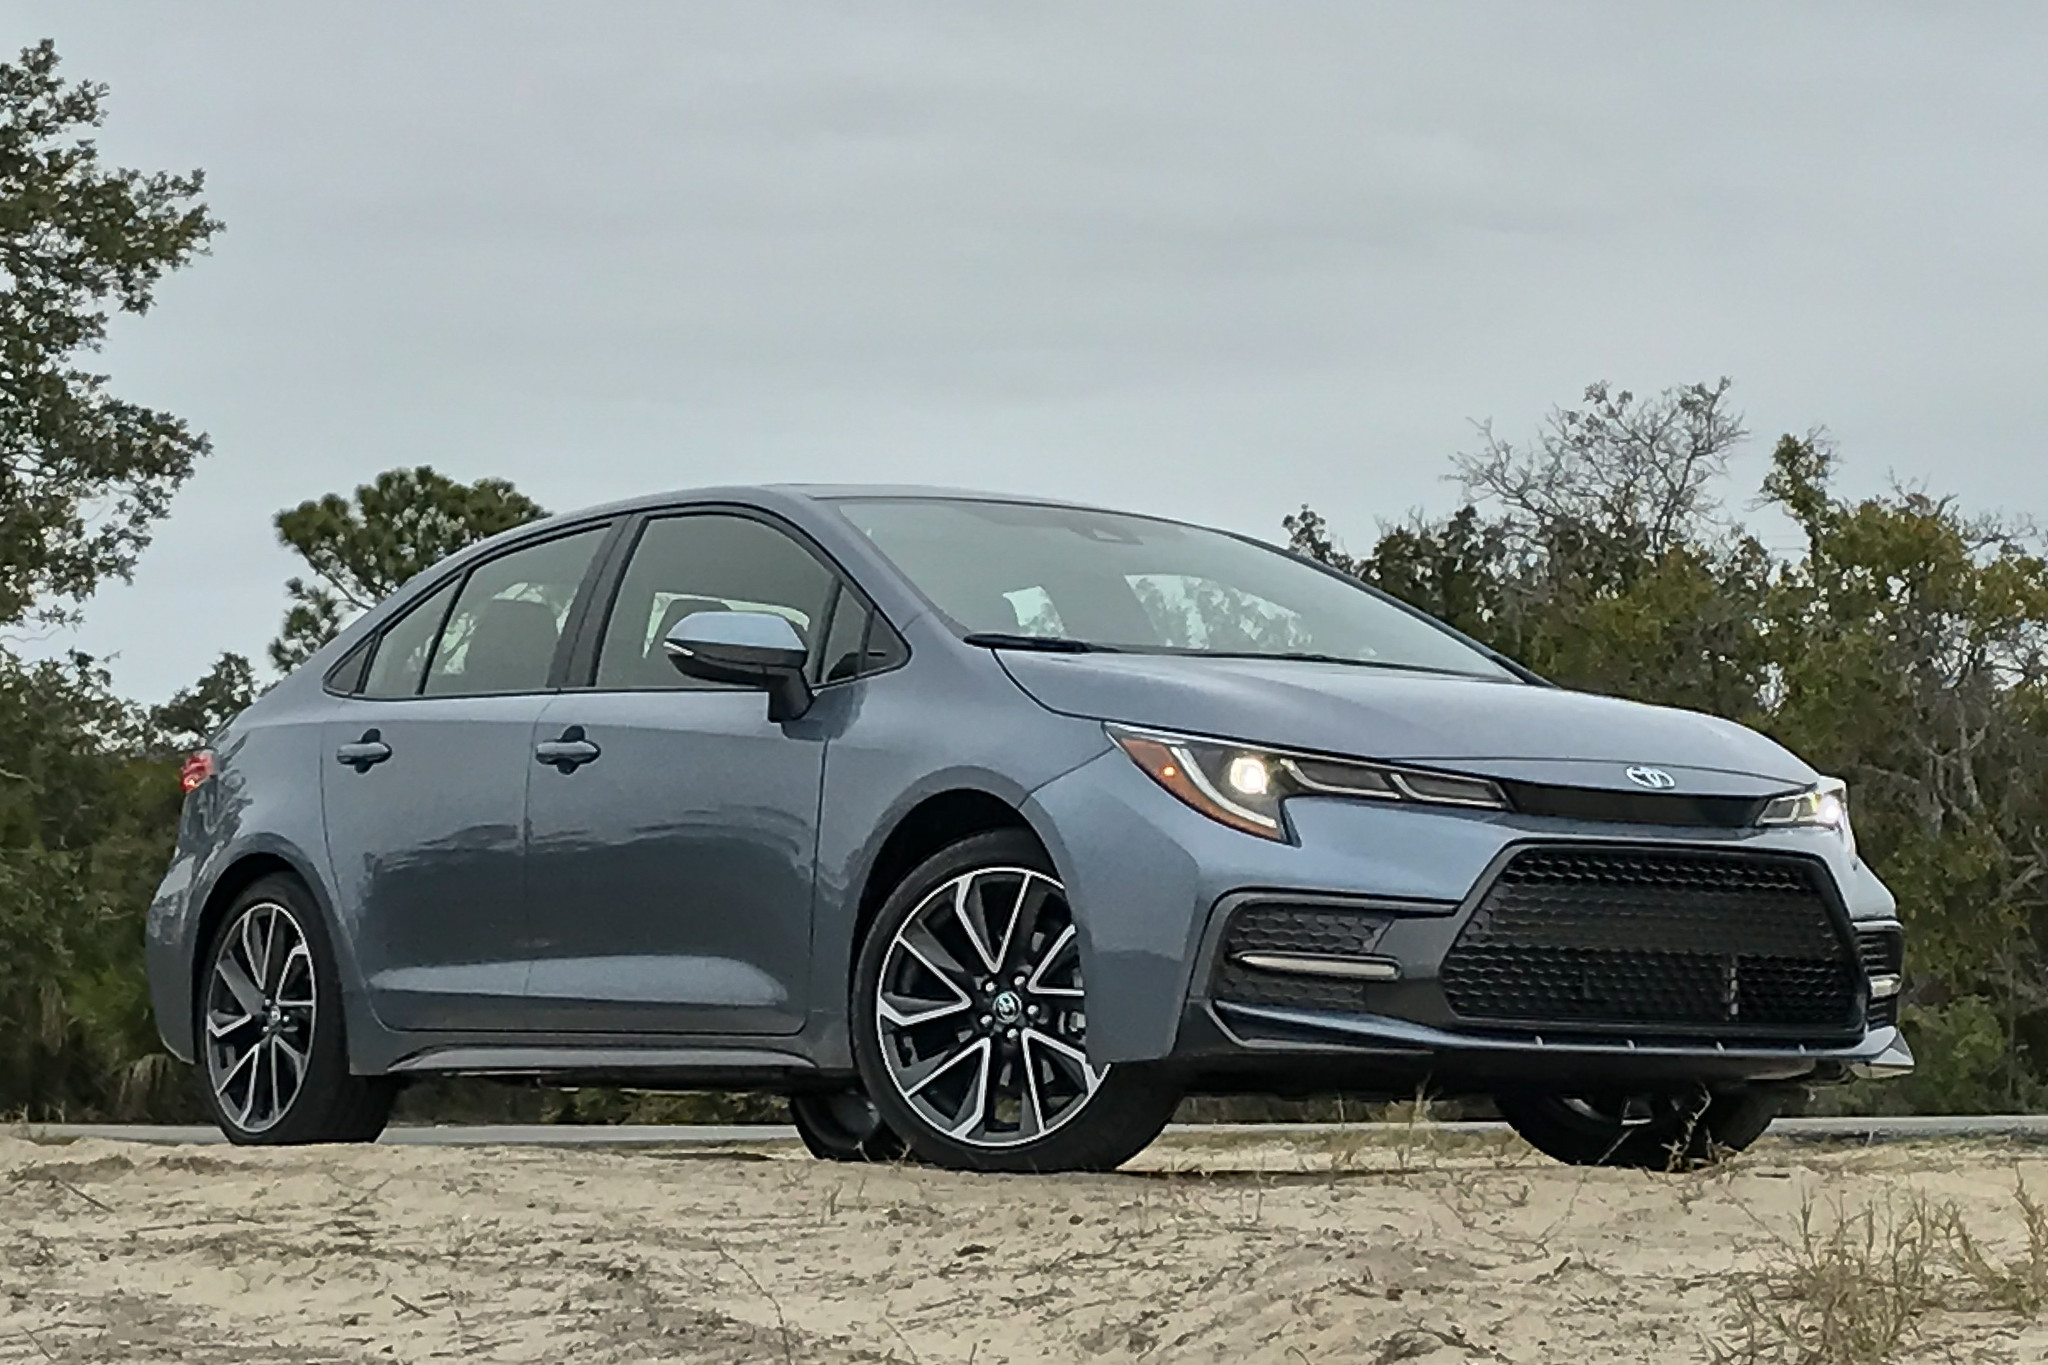 Best Hatchbacks 2020.2020 Toyota Corolla Review Hatchback Nice With A Trunk And